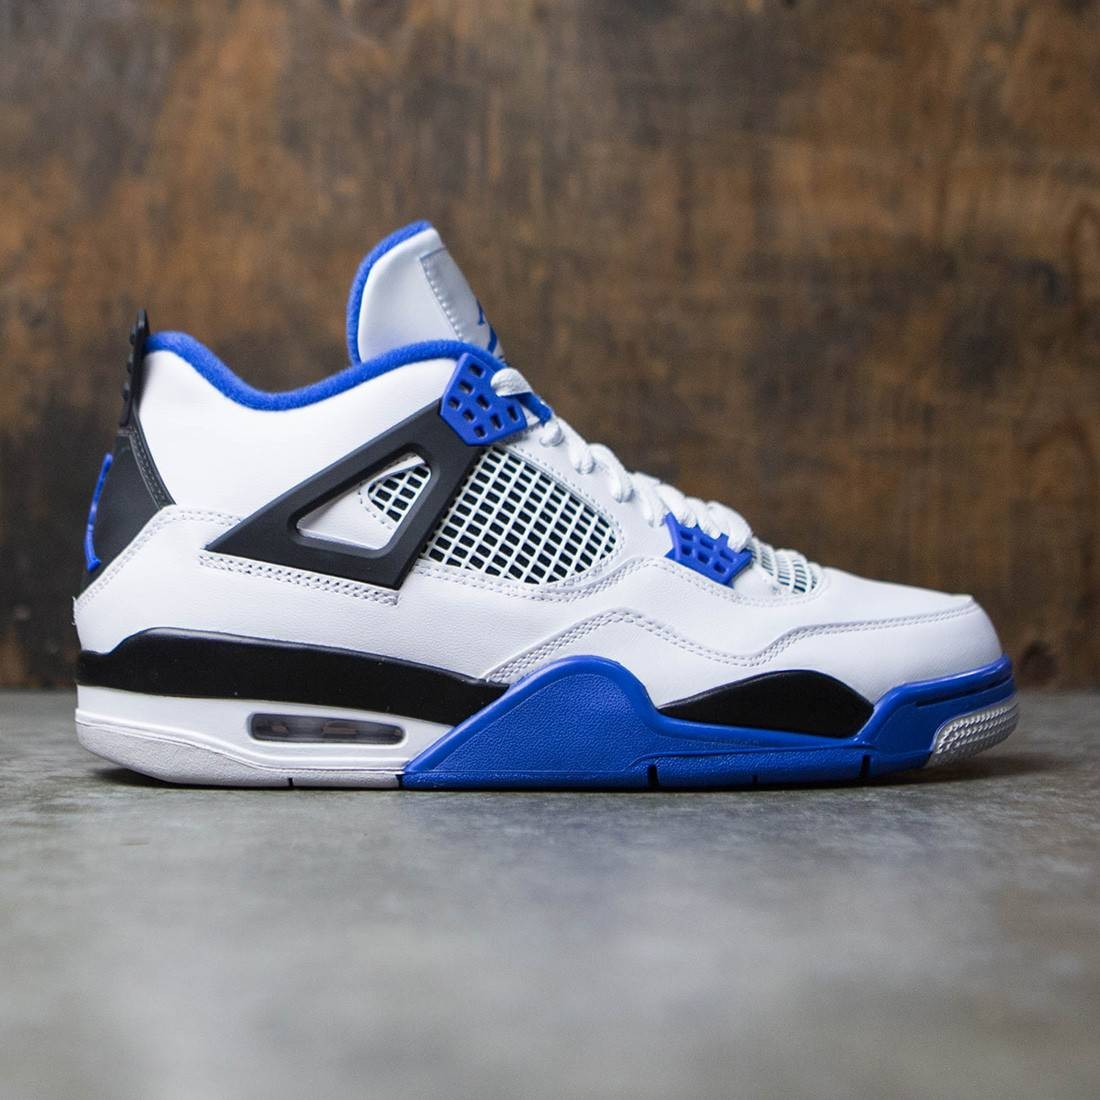 best website 8ded3 ba59c Jordan Men Air Jordan 4 Retro Motorsports (white   game royal-black)